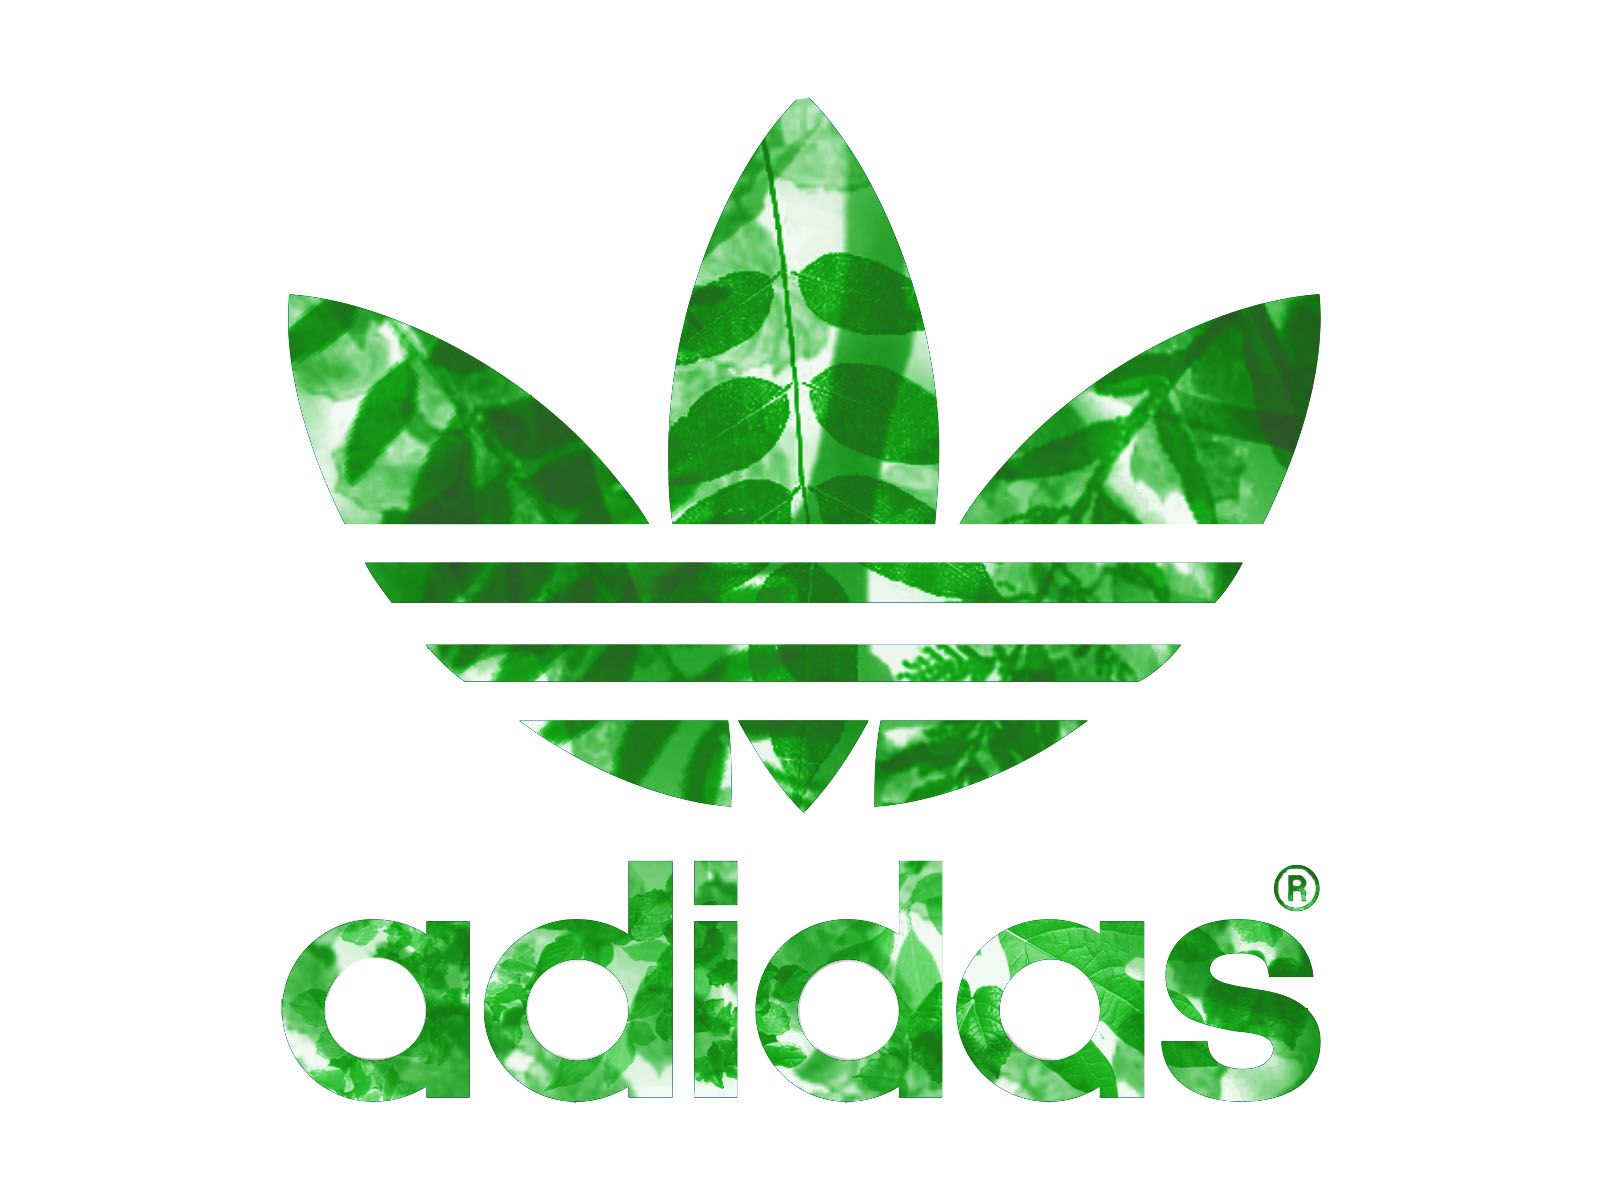 reputable site 601bf 33dea Adidas logo pictures free download